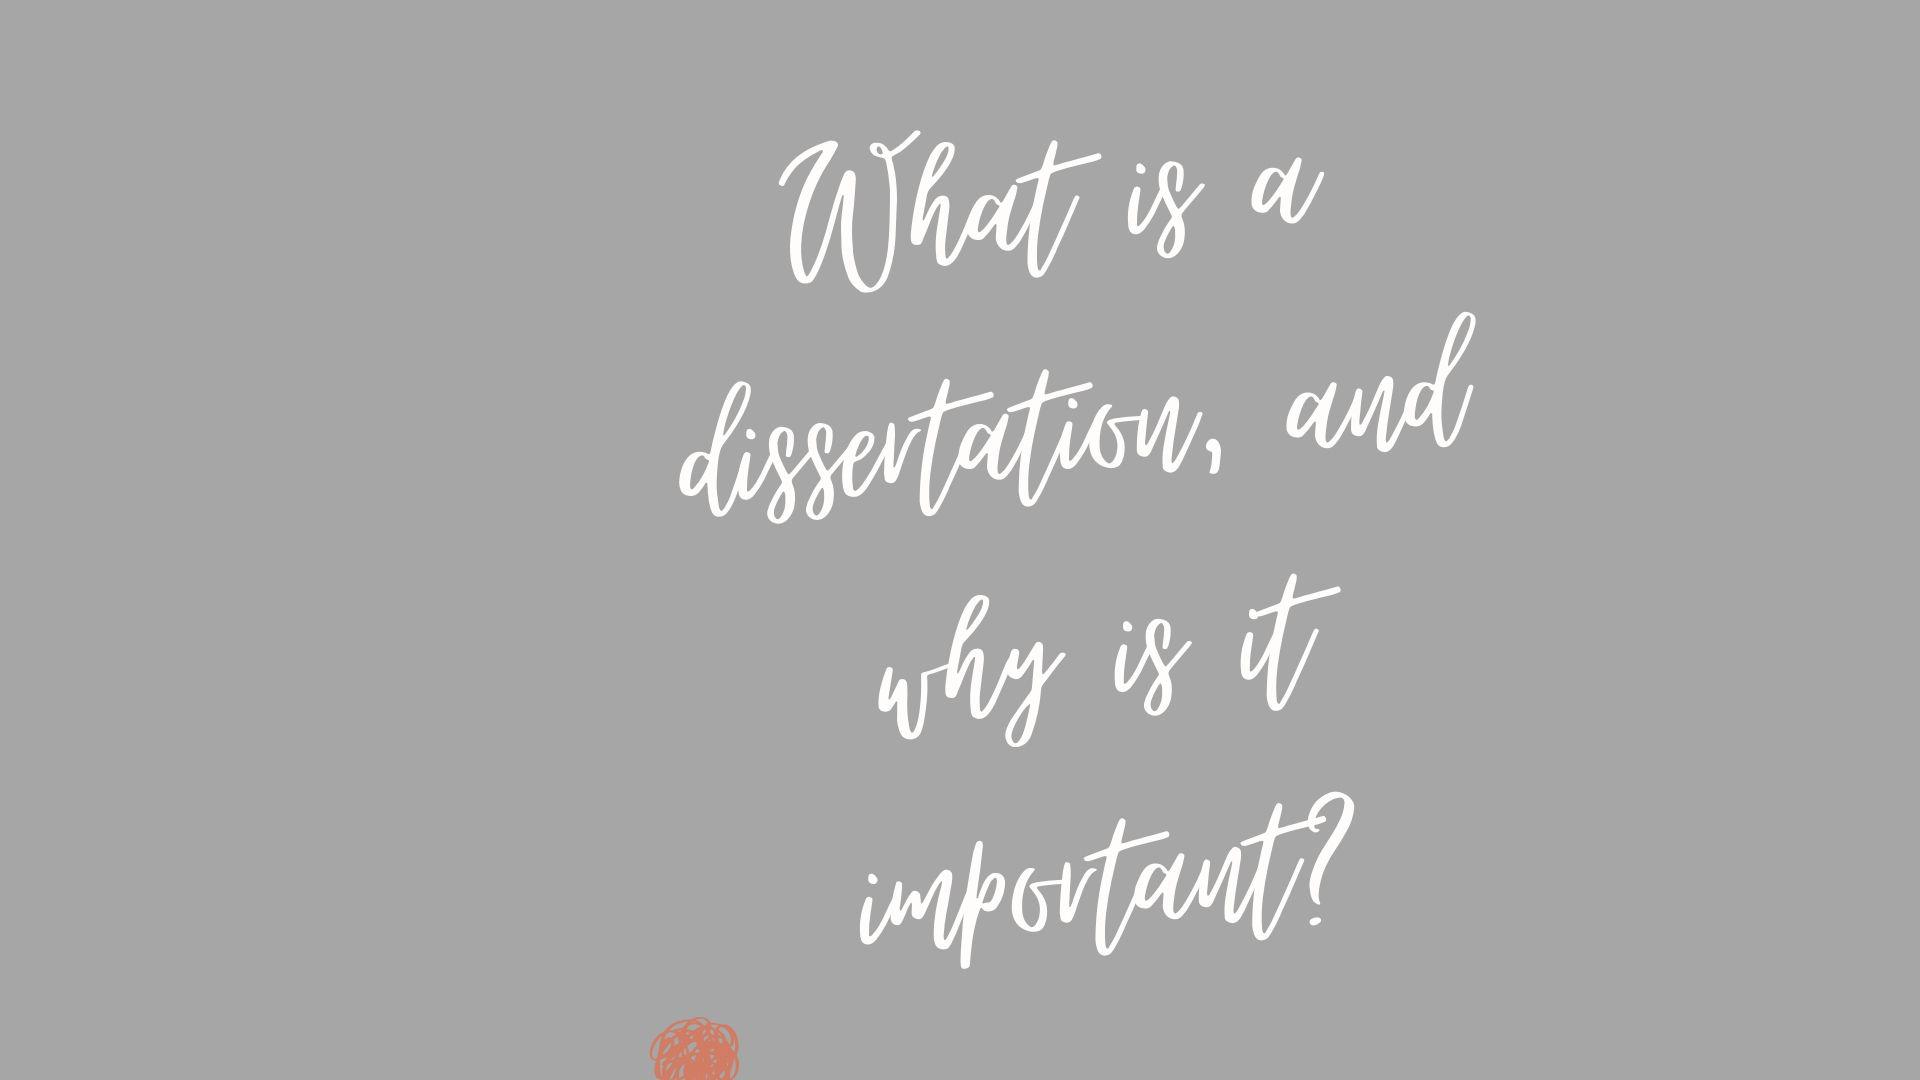 What is a dissertation, and why is it important?